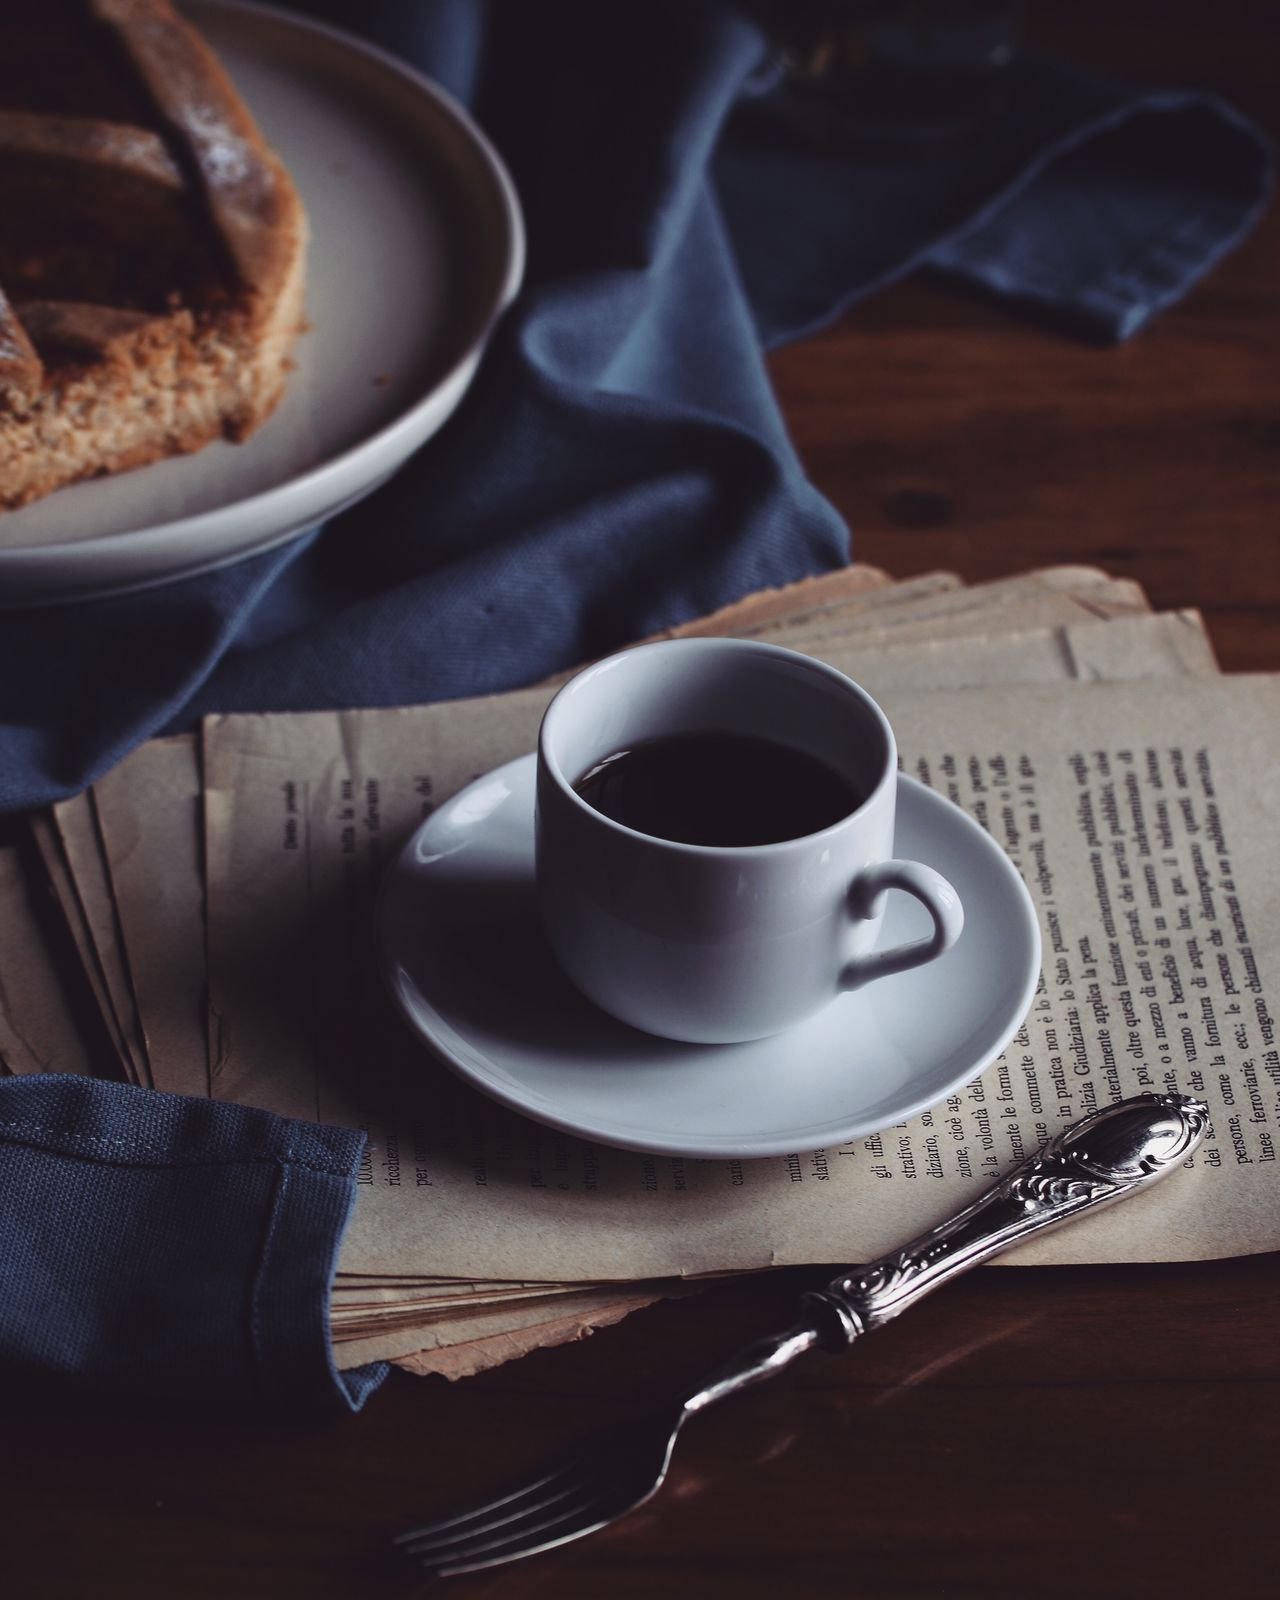 Coffee Cup Coffee - Drink Drink Food And Drink Refreshment Cup Table Saucer Indoors  Freshness Food Breakfast No People Close-up Day Fresh On Eyeem  Coffee